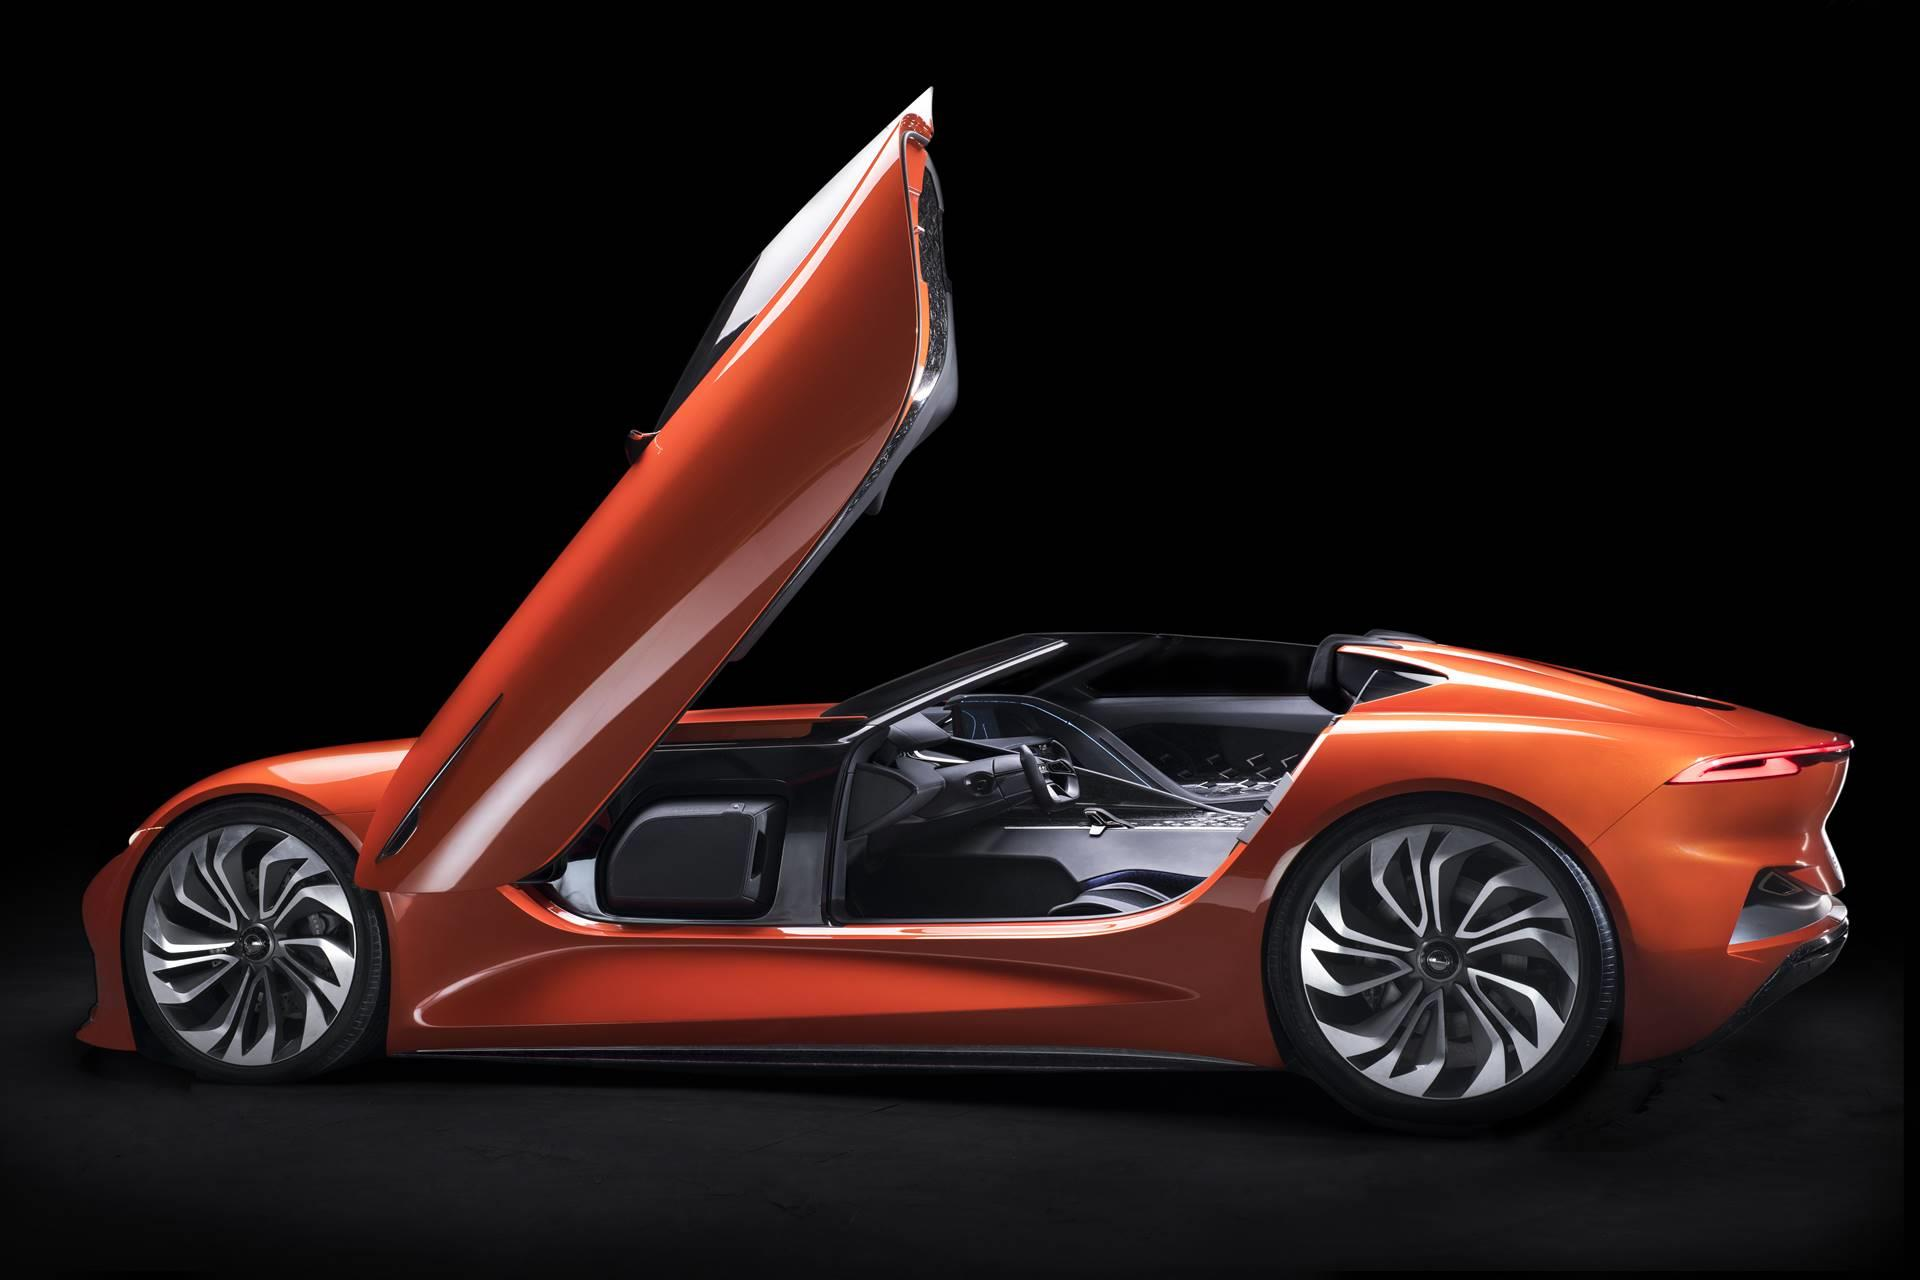 2020 Karma SC1 Vision Concept News and Information Research and 1920x1280